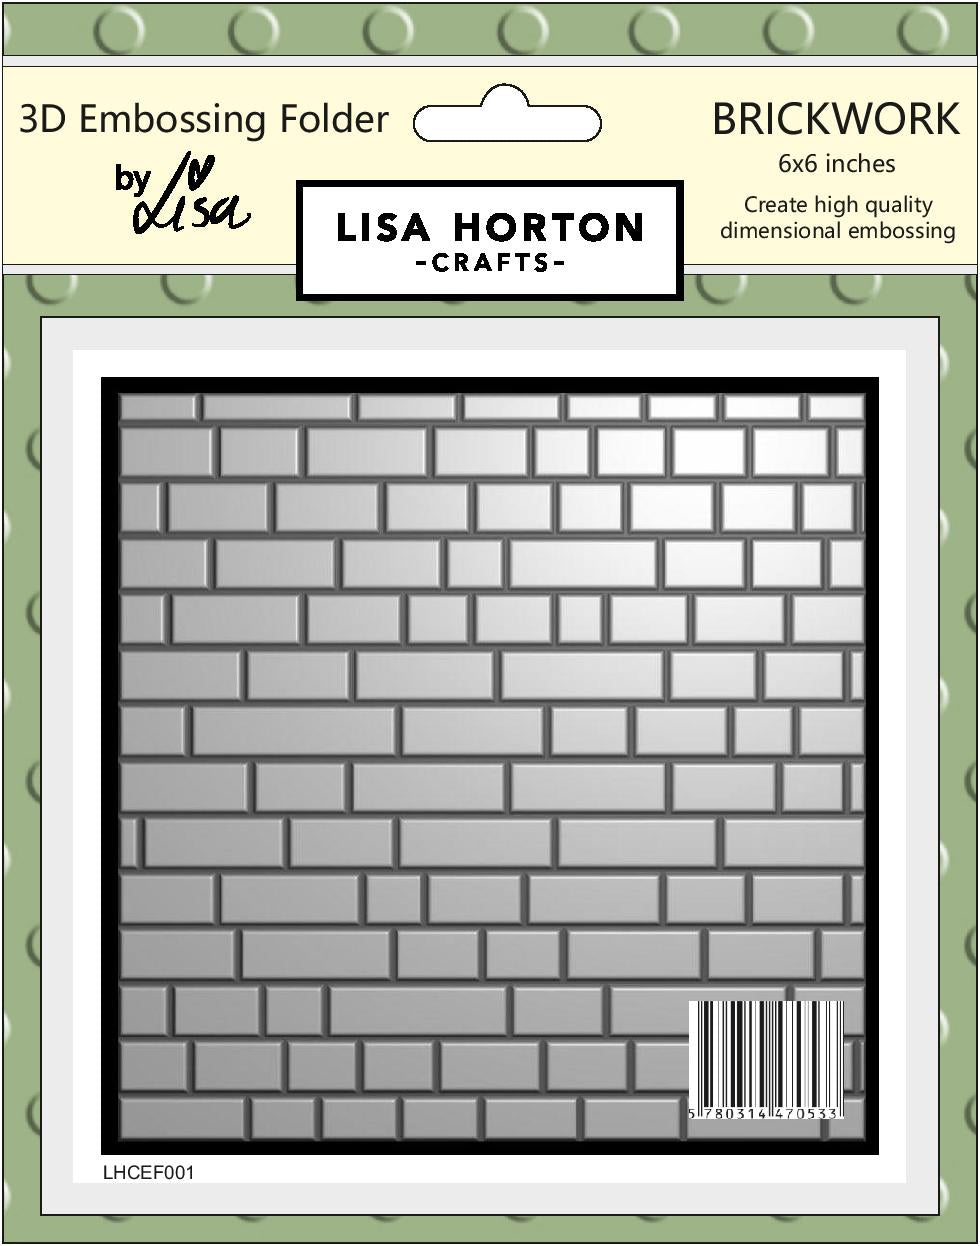 3D Embossing Folder - Brickwork